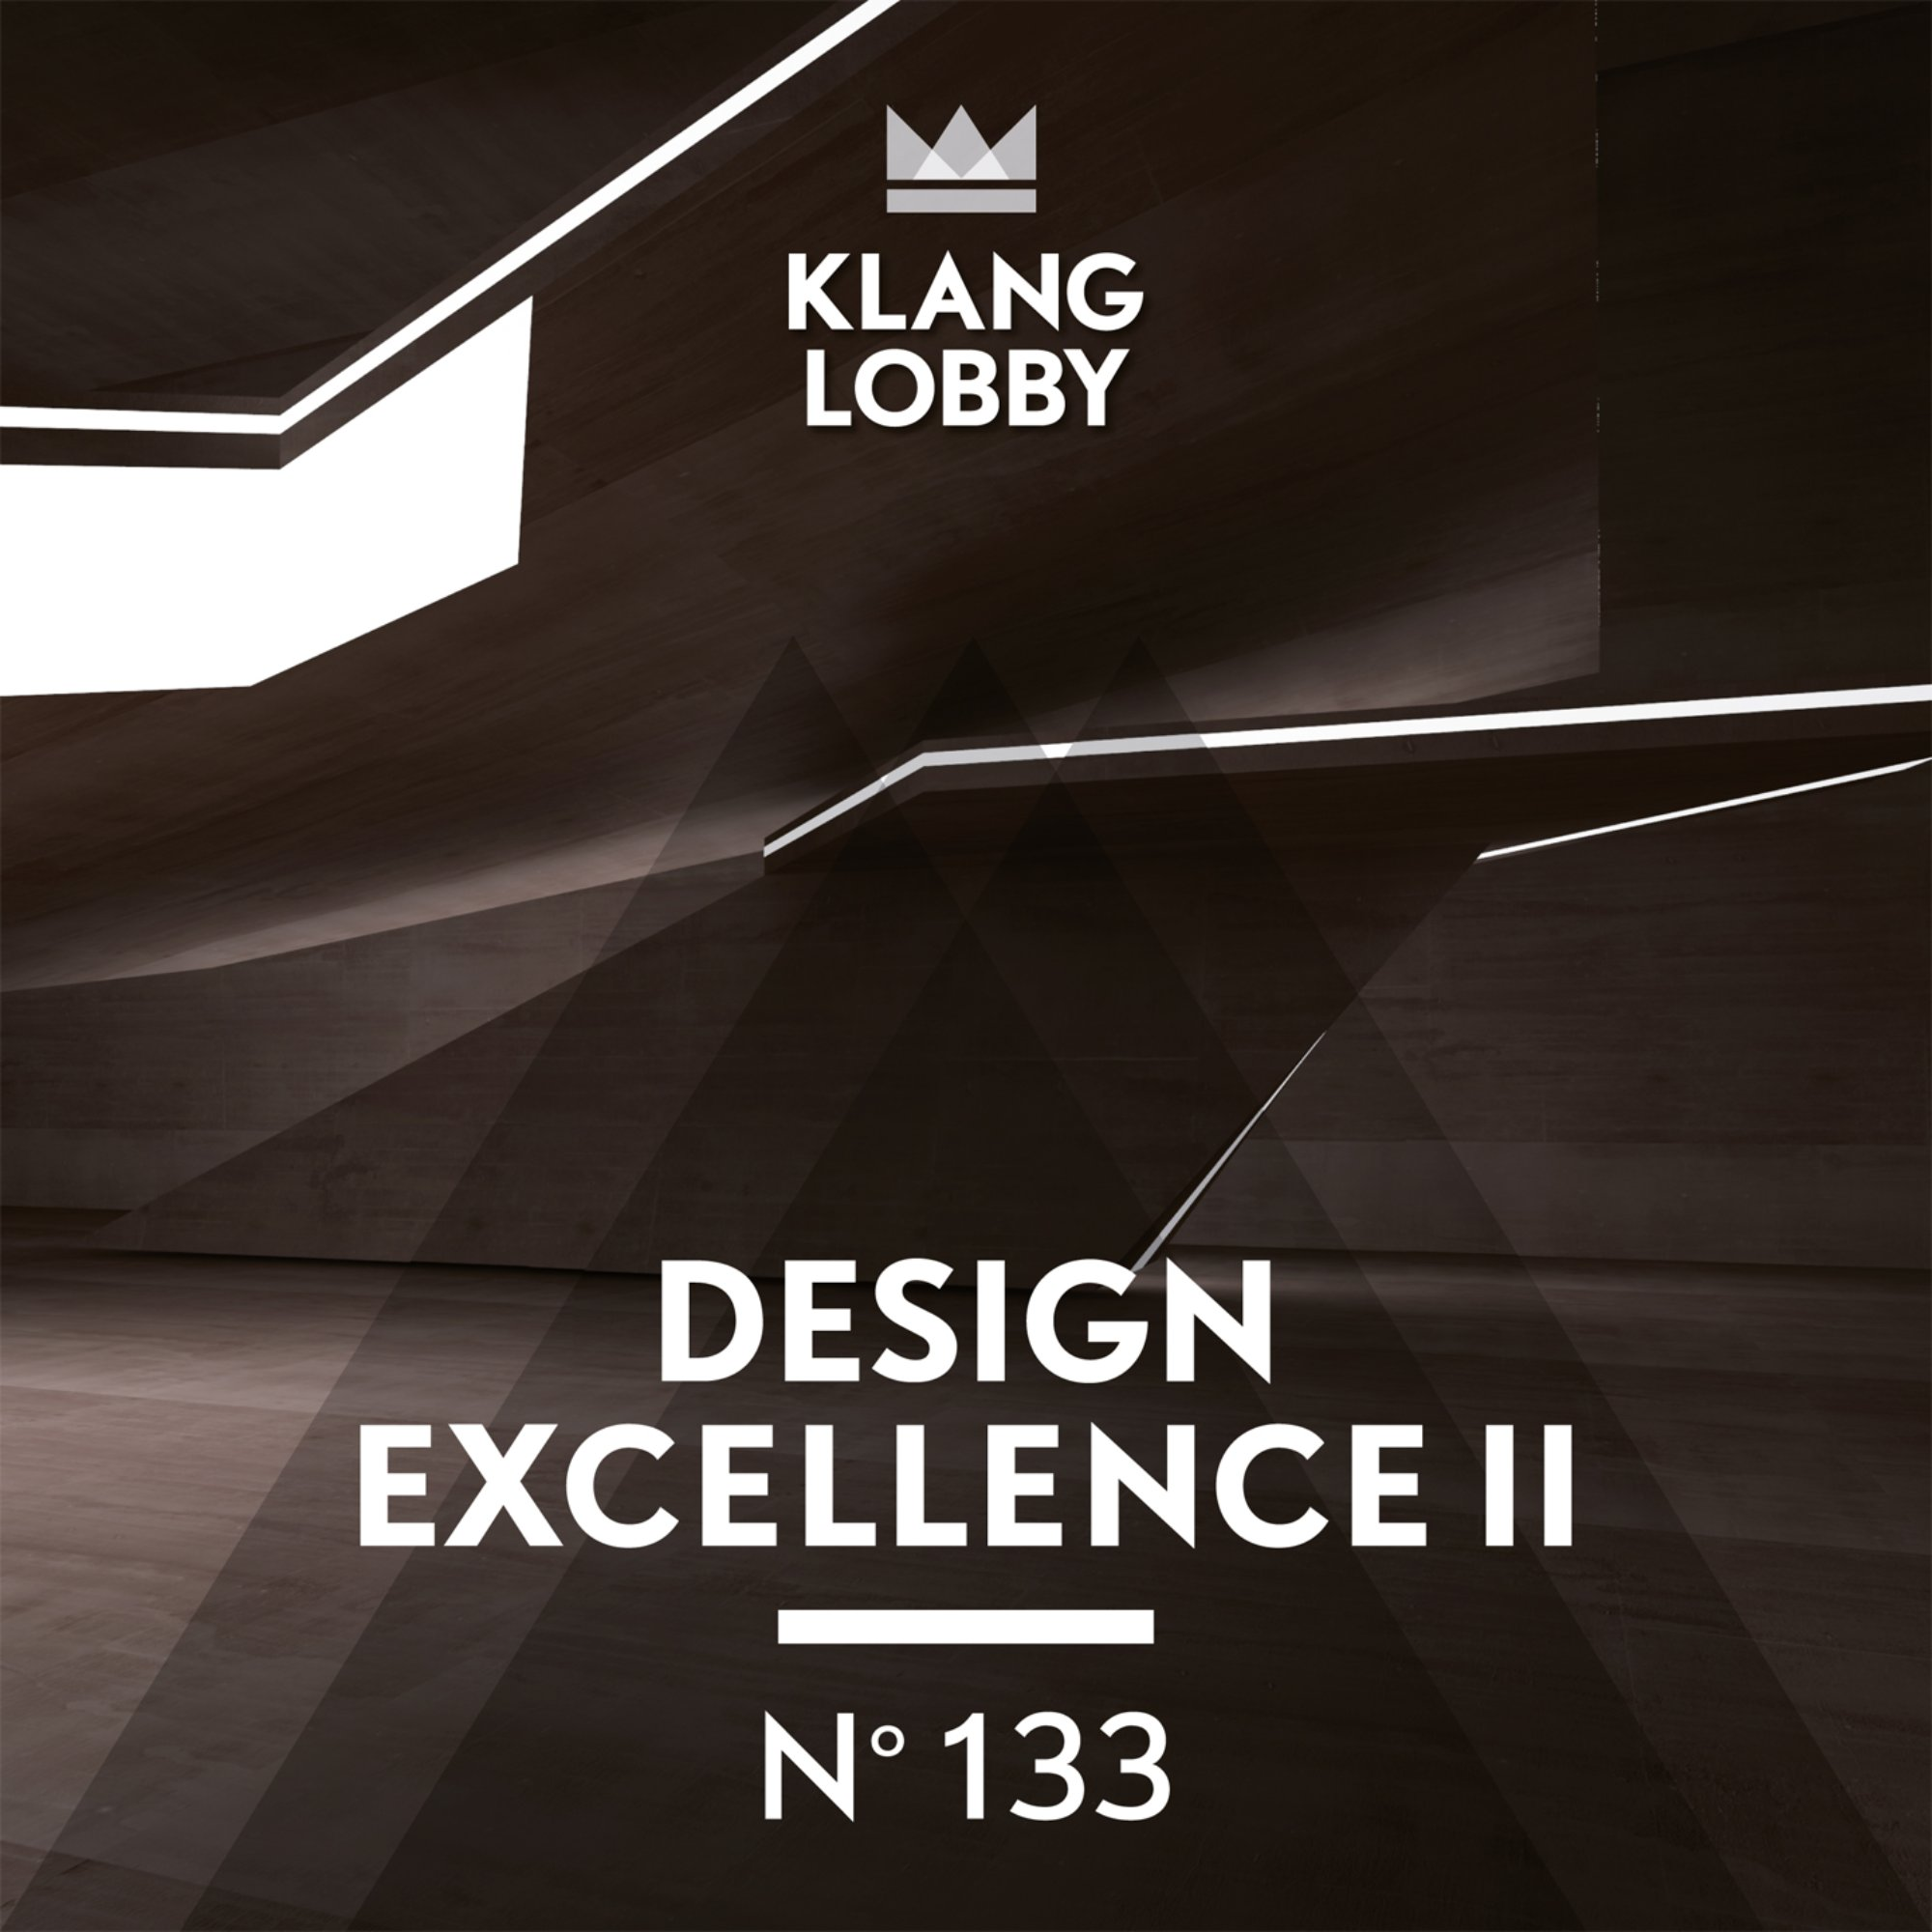 Design Excellence II